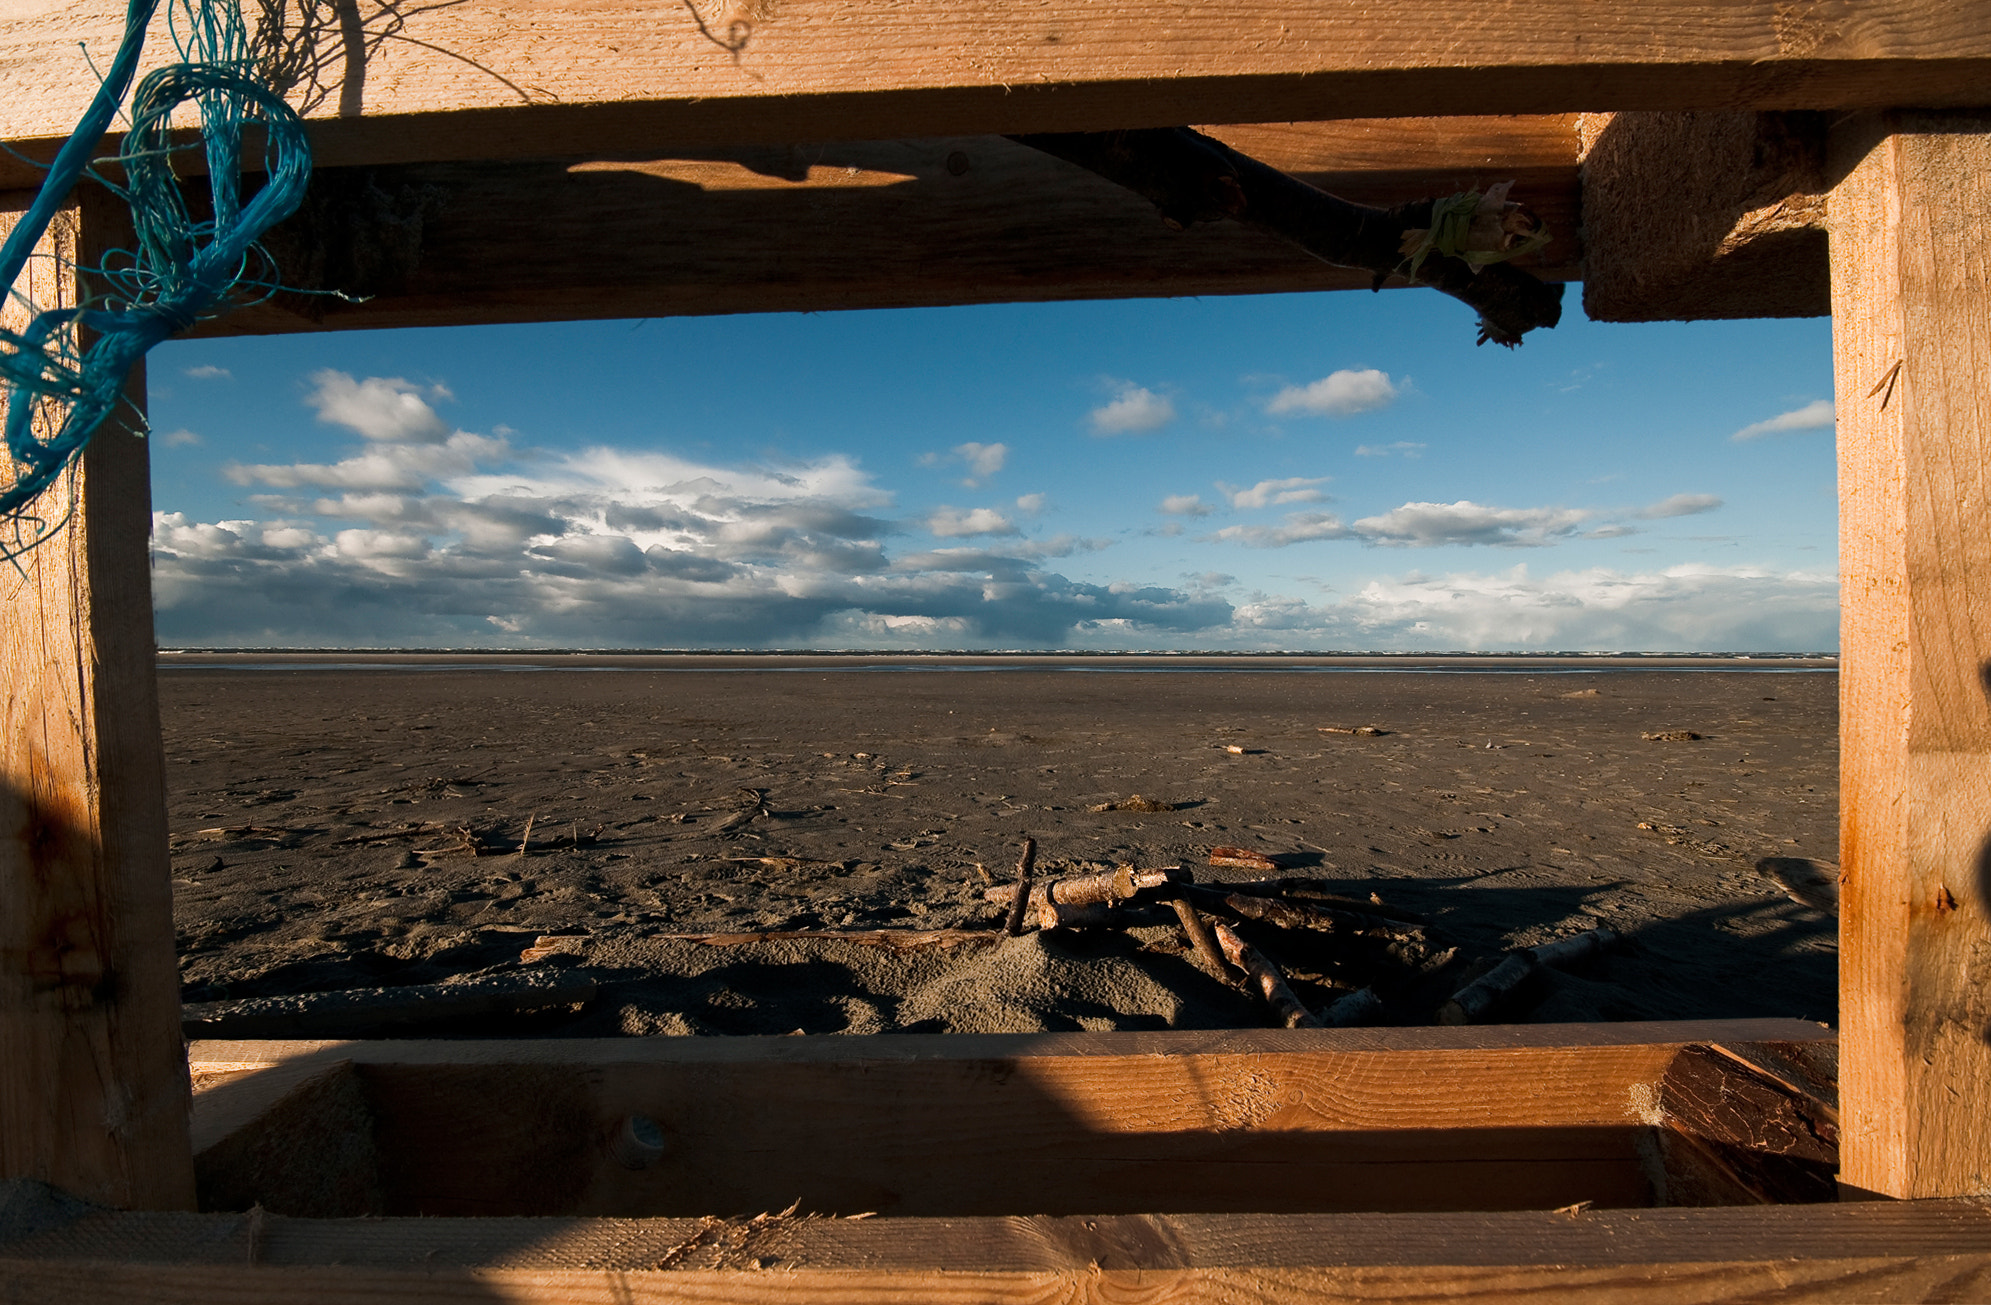 Photograph Window to the Sea by Daniel Bosma on 500px